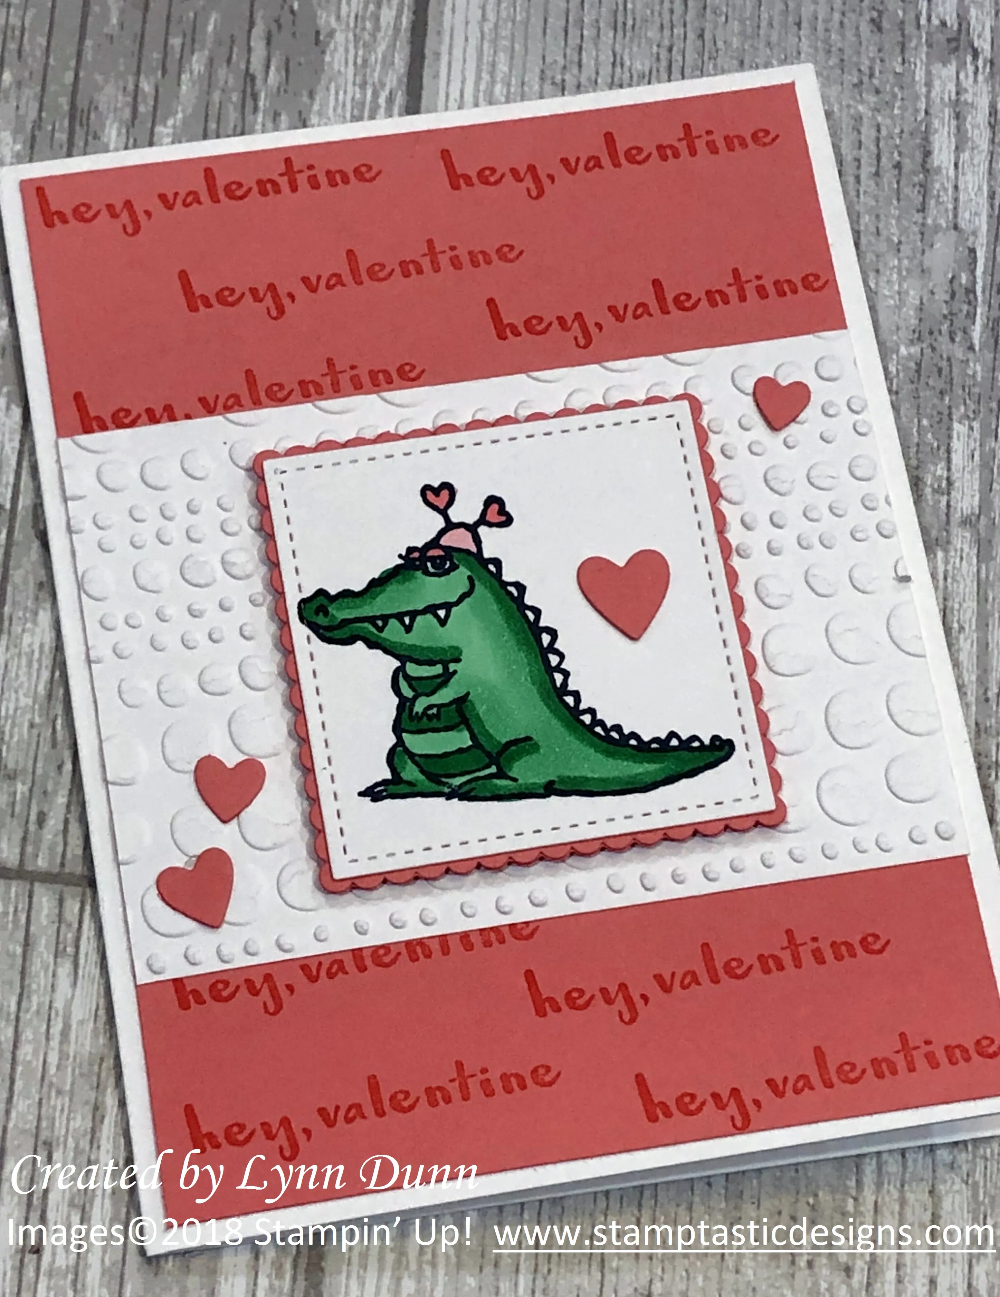 hey love stampin up archives  lynn dunn  stampin up